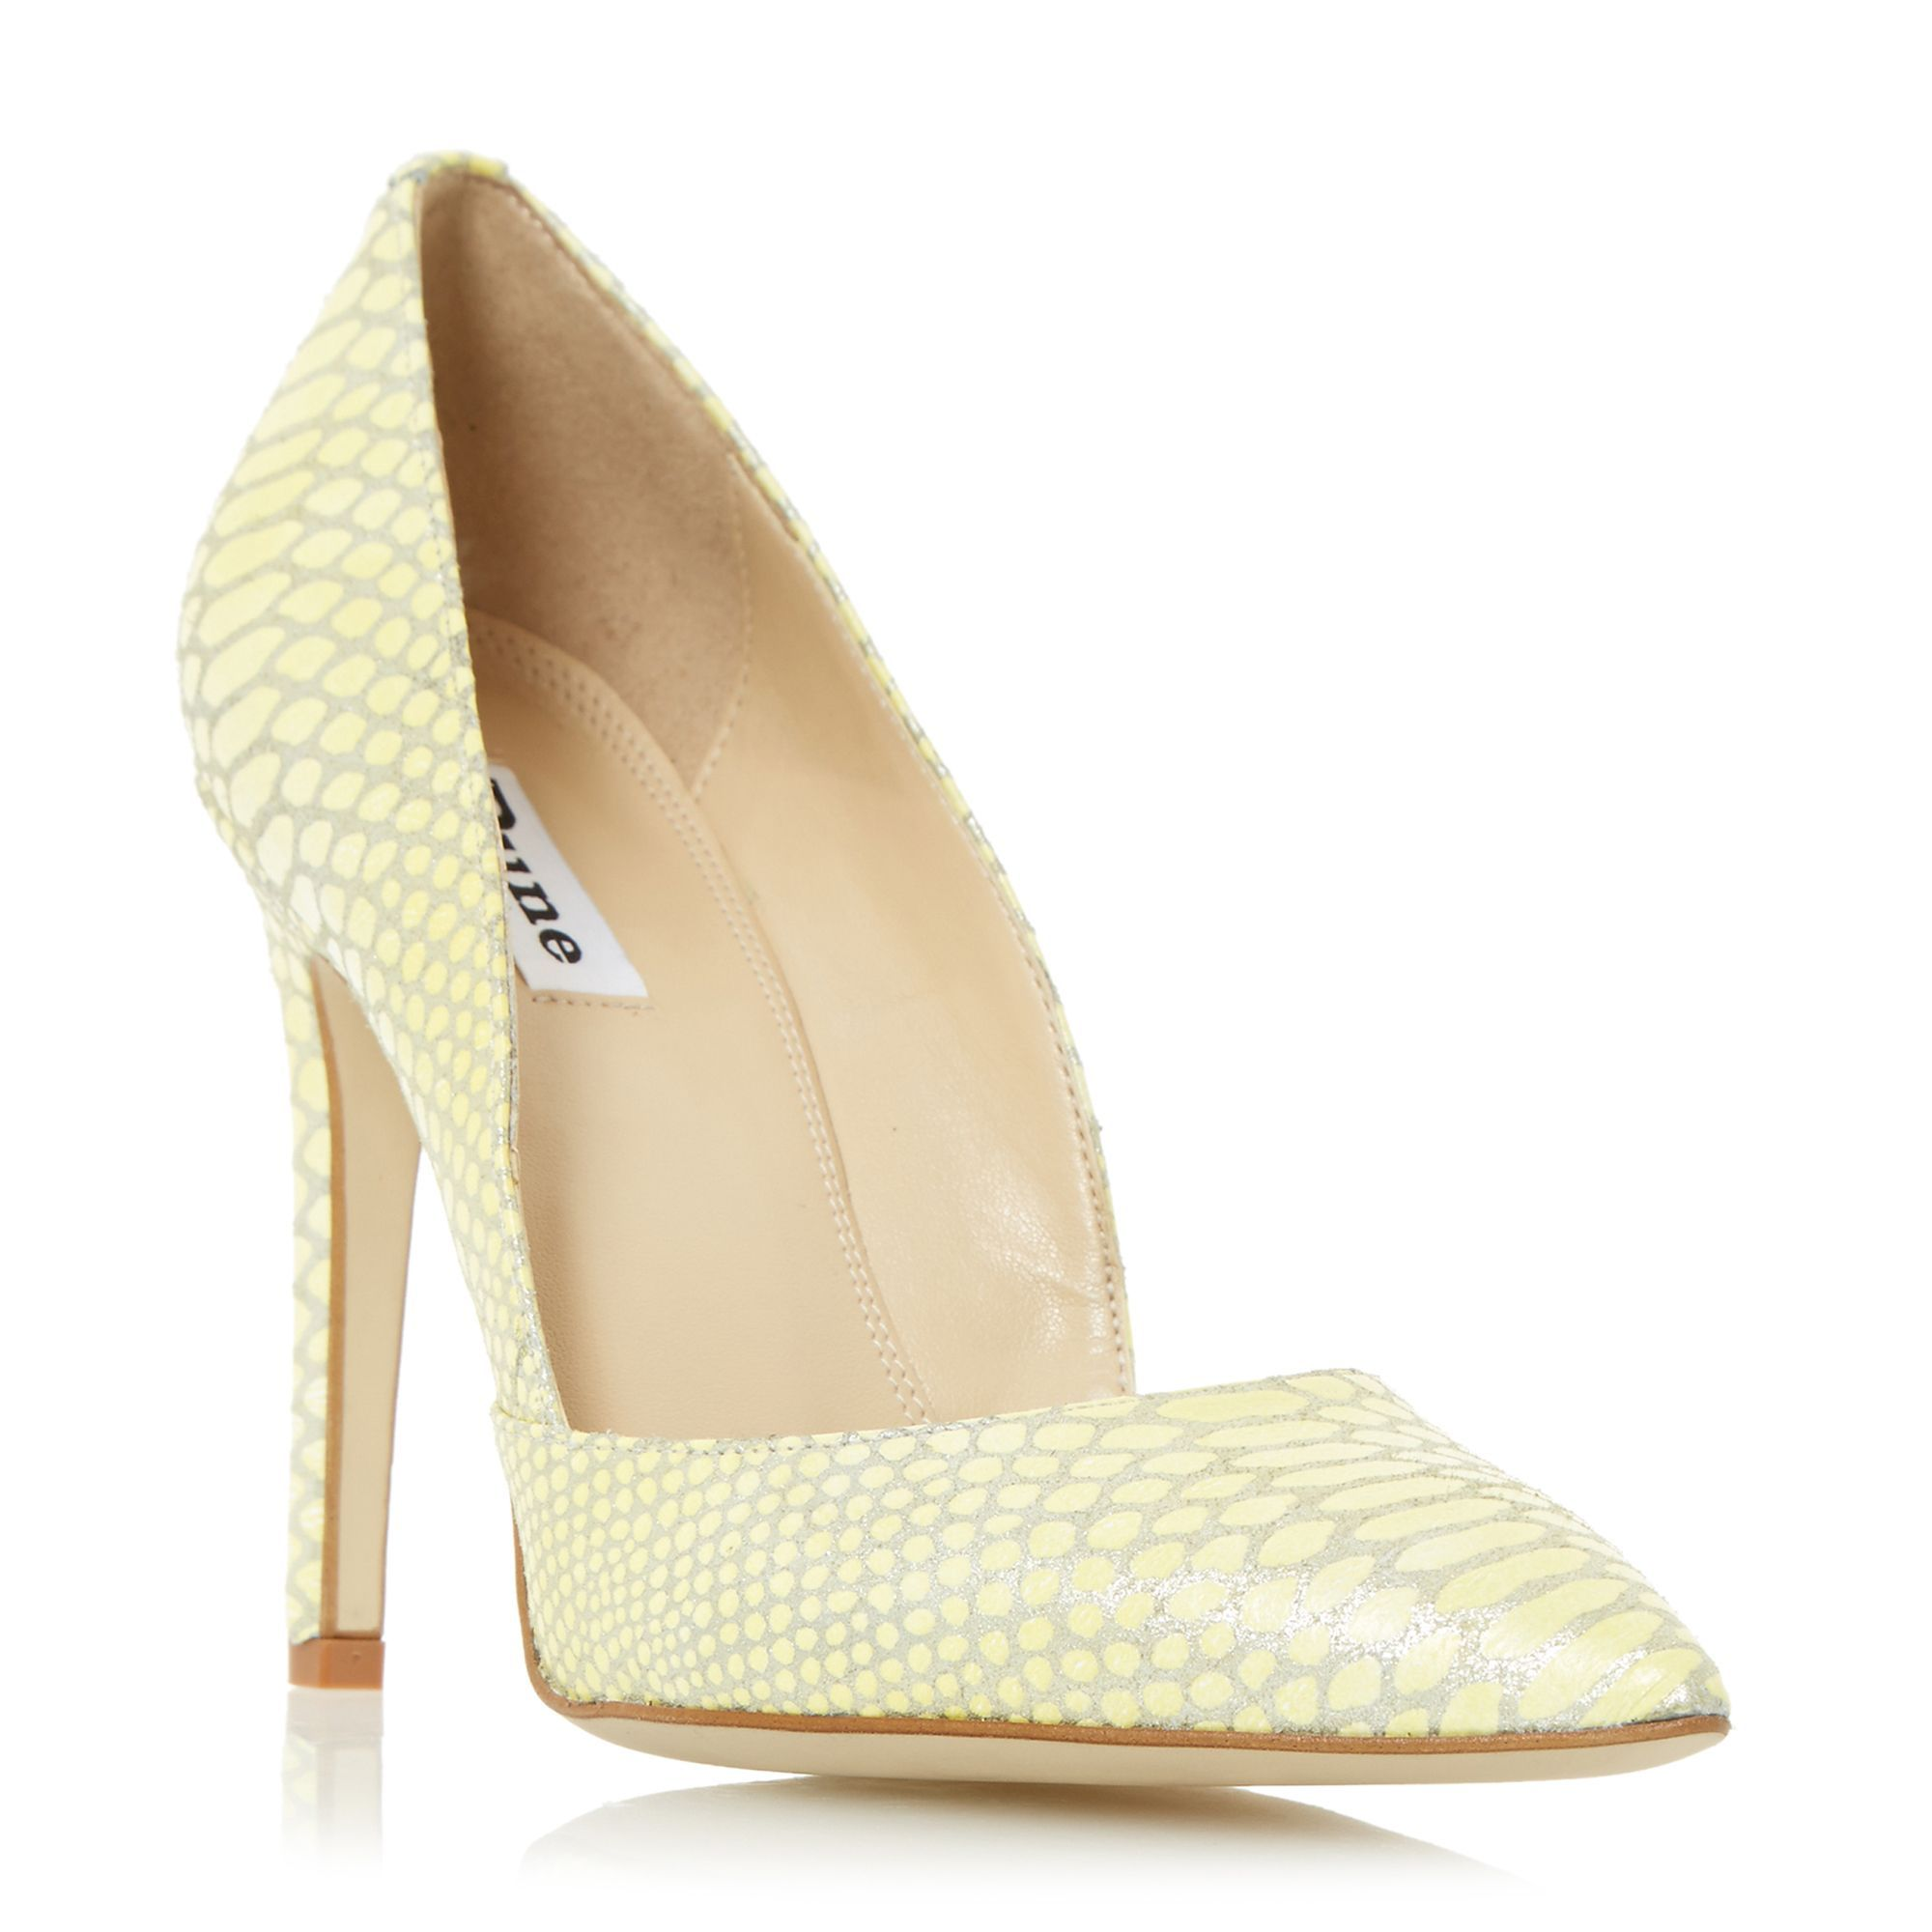 6287dd7beb2 Dune Alia two part pointed court shoes, Yellow | Ladies Shoes ...